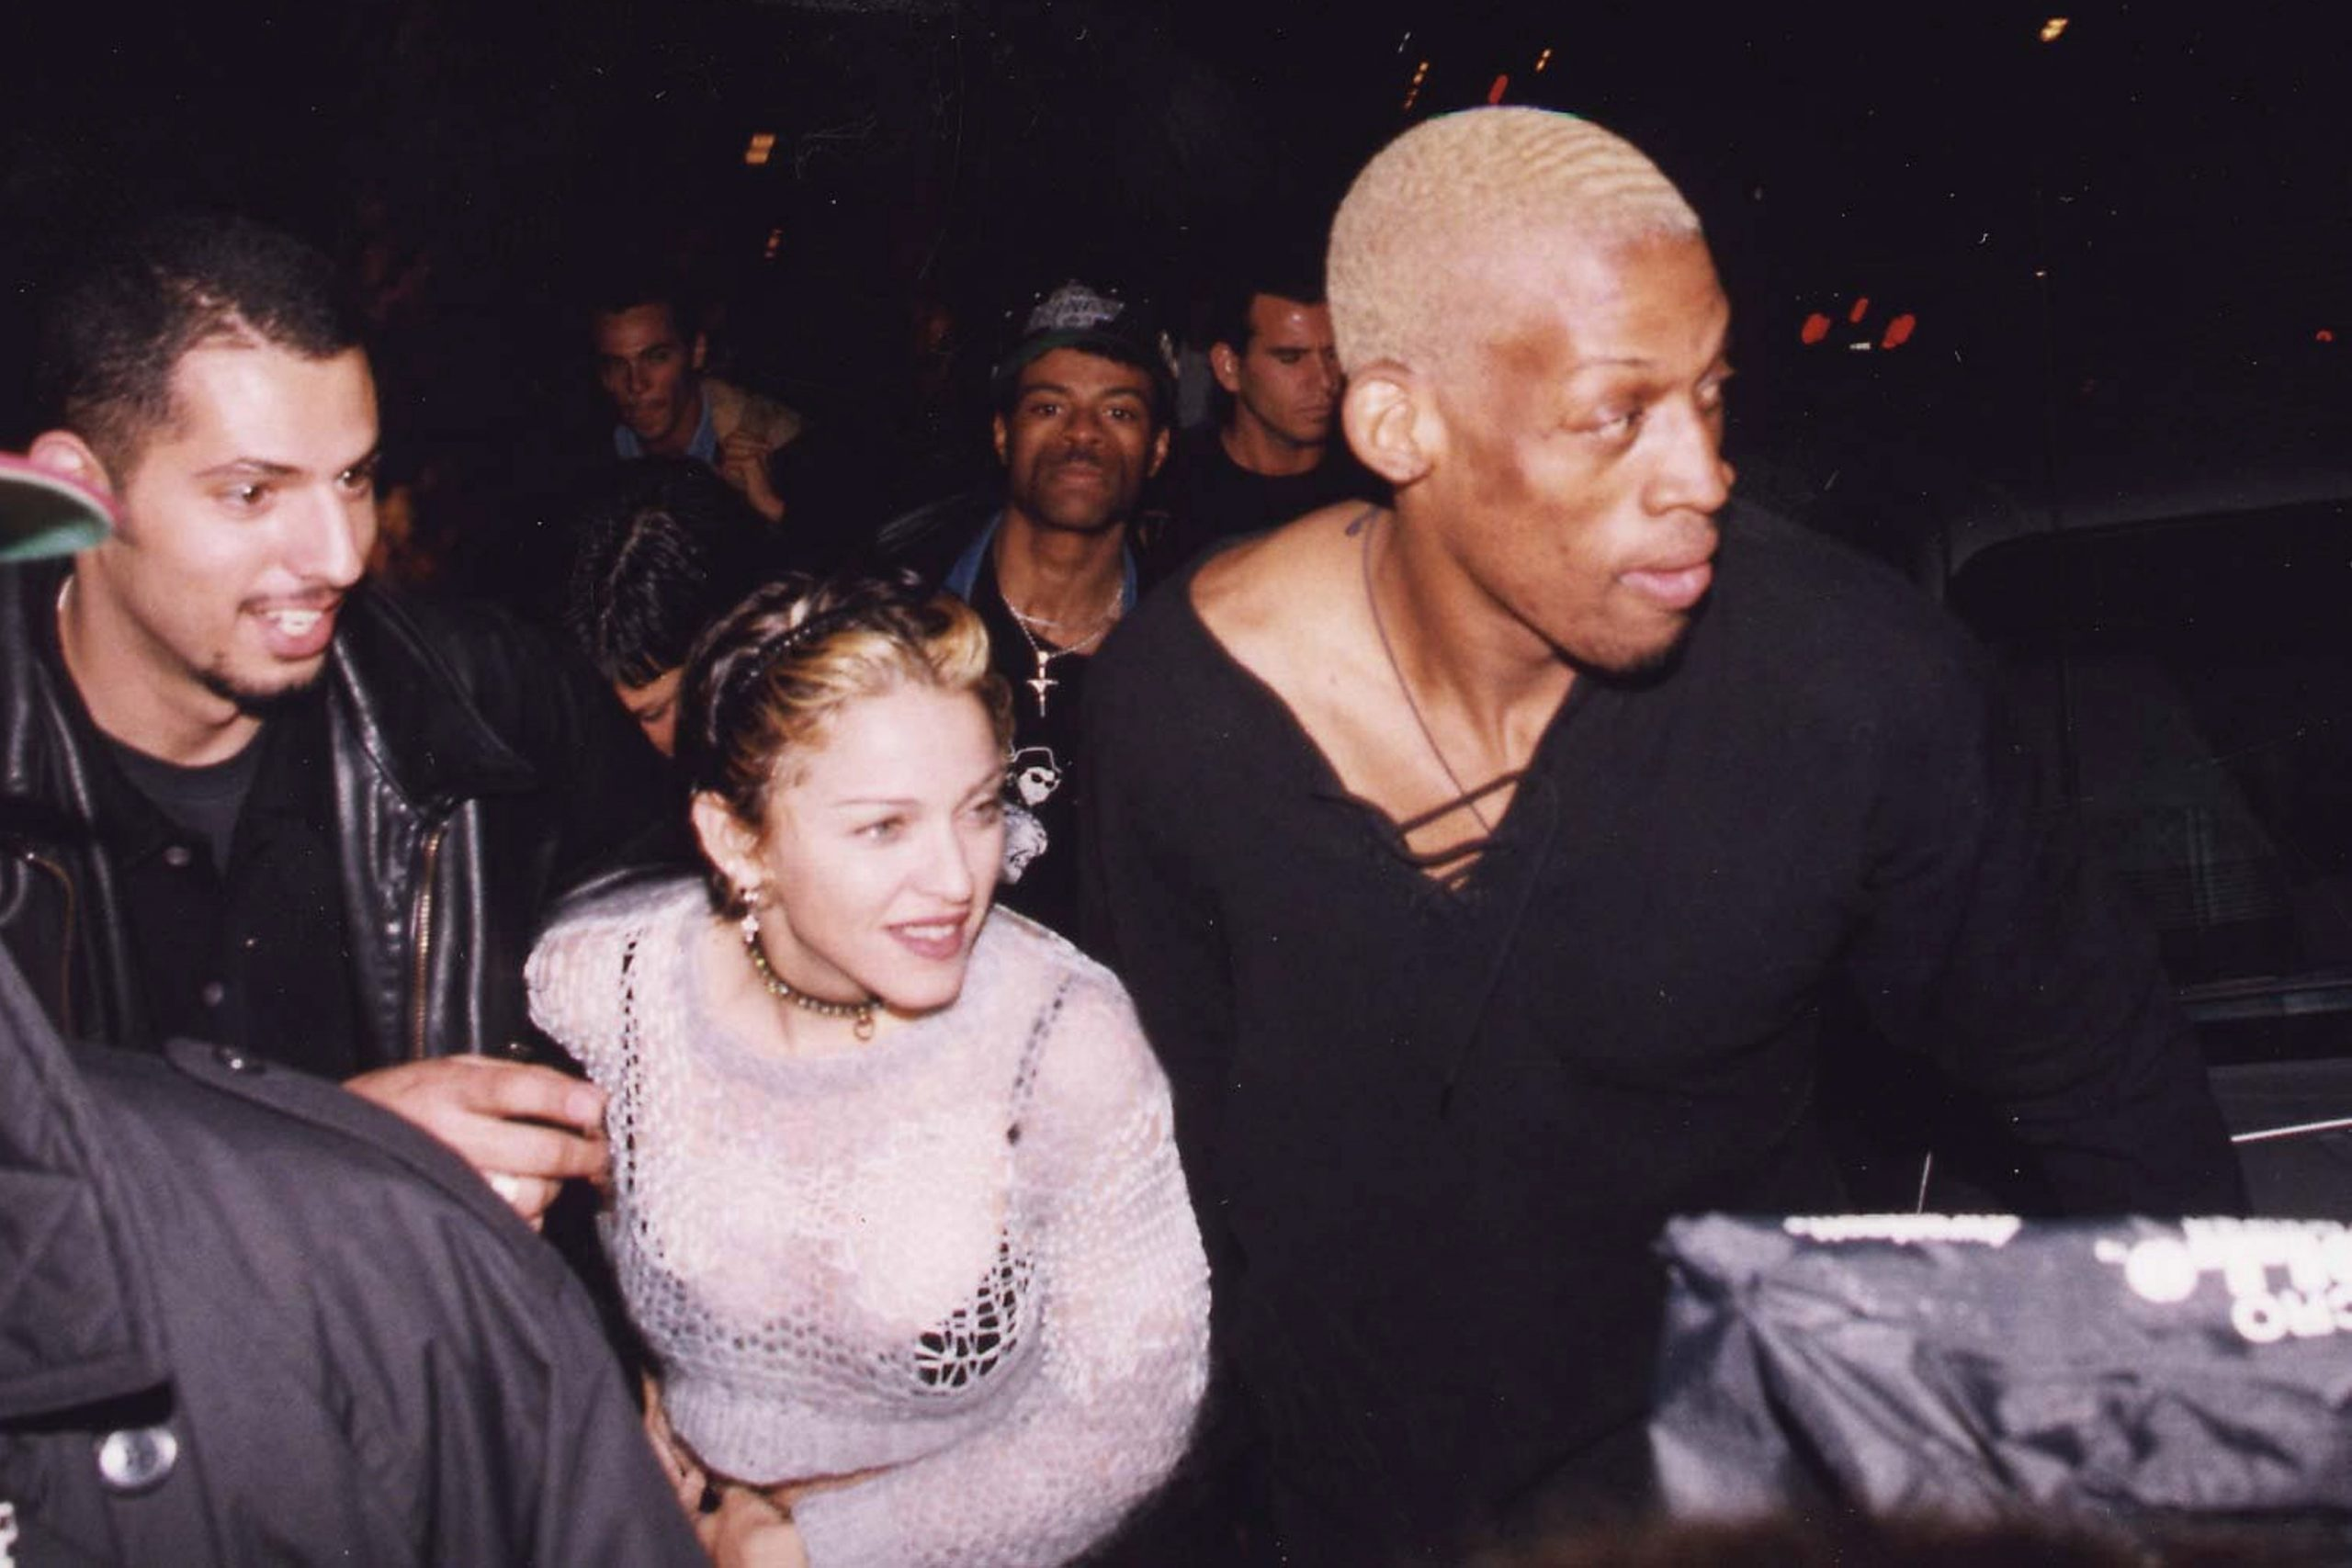 Dennis Rodman with Madonna in the past